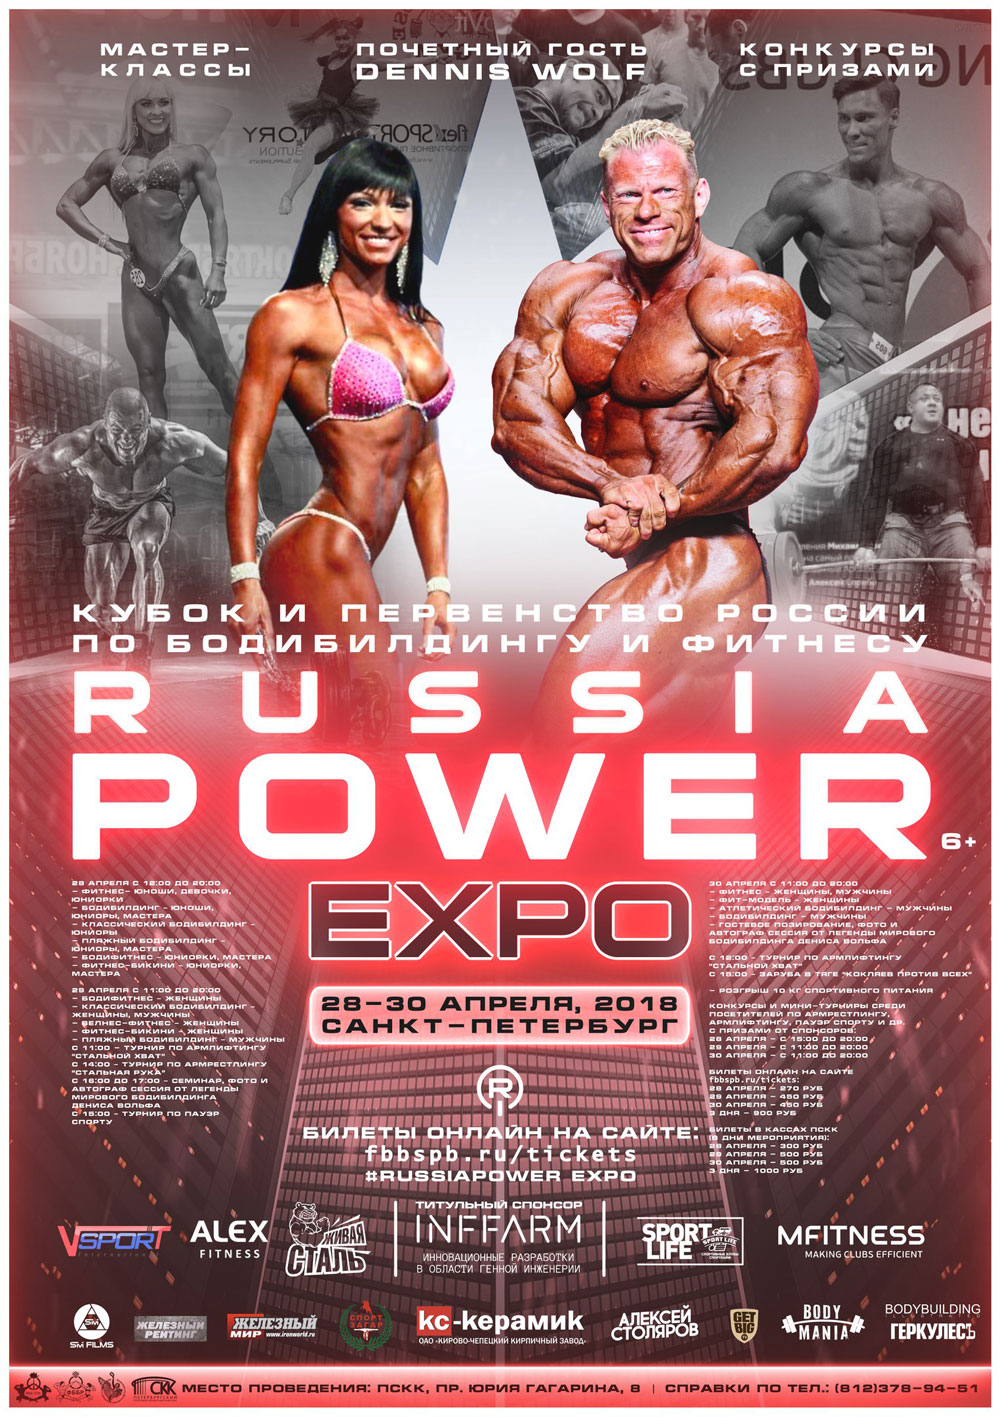 RUSSIA POWER EXPO